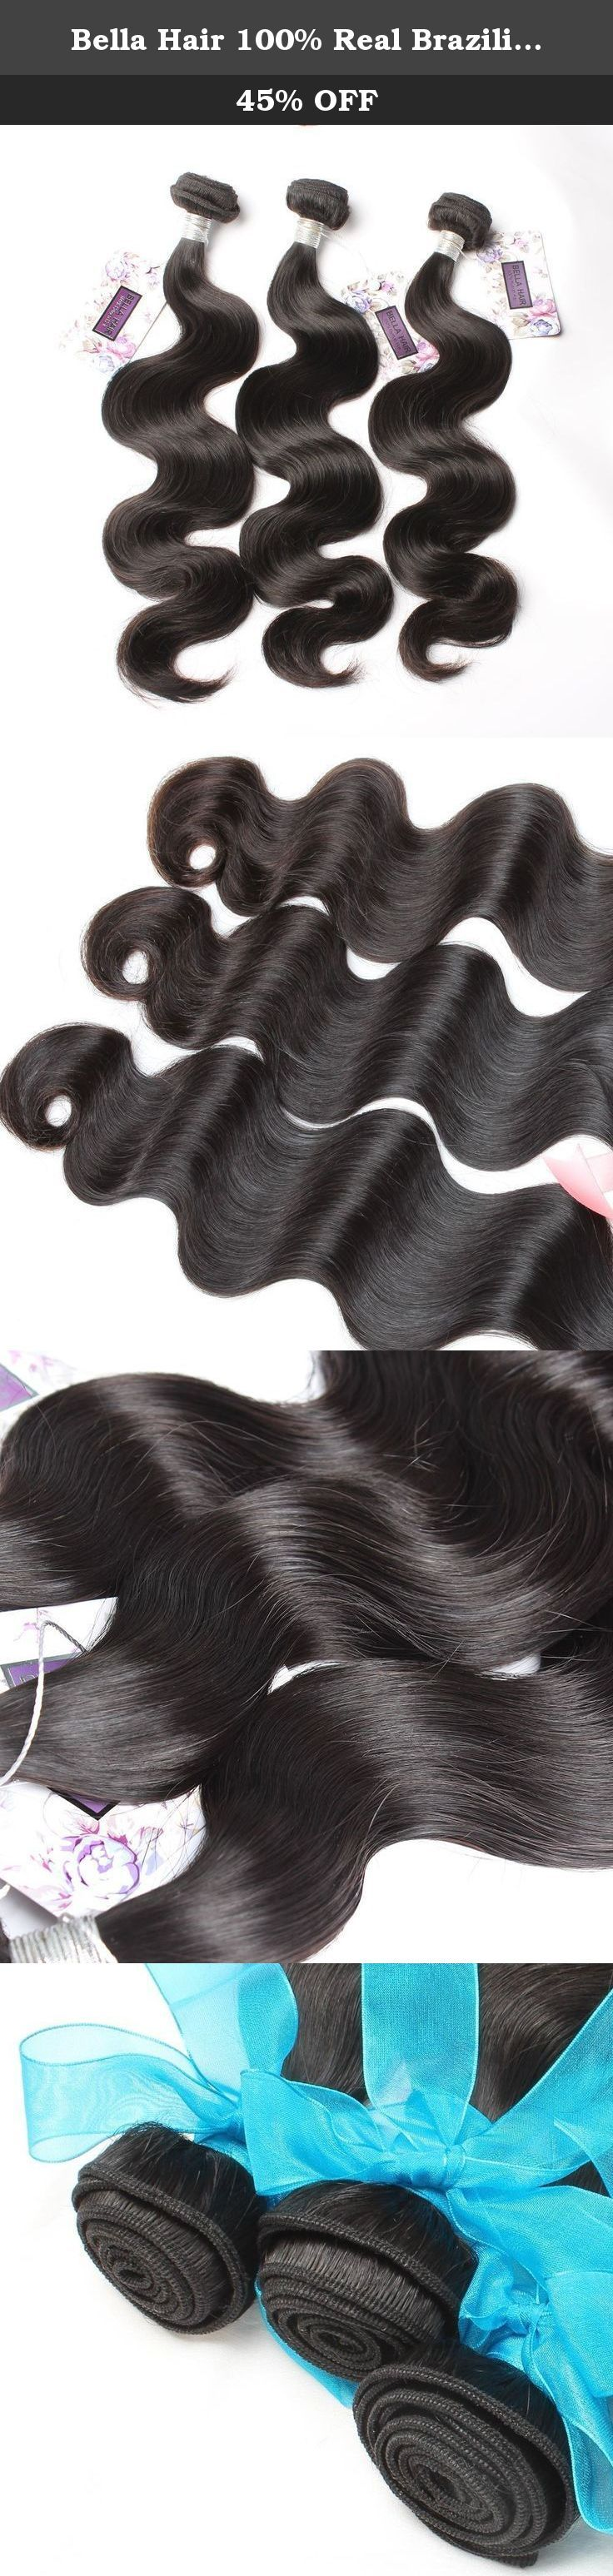 """Bella Hair 100% Real Brazilian Body Wave Bundles Hair Extensions Human Virgin Hair Weave 3 Bundles Natural Color 8""""-30"""" (16inch). Brazilian Virgin Hair Bundles 1) Material: 100% Brazilian virgin human hair , unprocessed natural hair with no chemical process, No Acid! No Dye! 100% Real Human Hair. 2) Quality: Grade AAAAA, No shedding, No tangle, No lice, intact cuticle, long lifetime 3) Length:16""""16""""16"""", 100% ture to the length 4) Color: Natural Black Color (can be dyed or bleached) 5)…"""